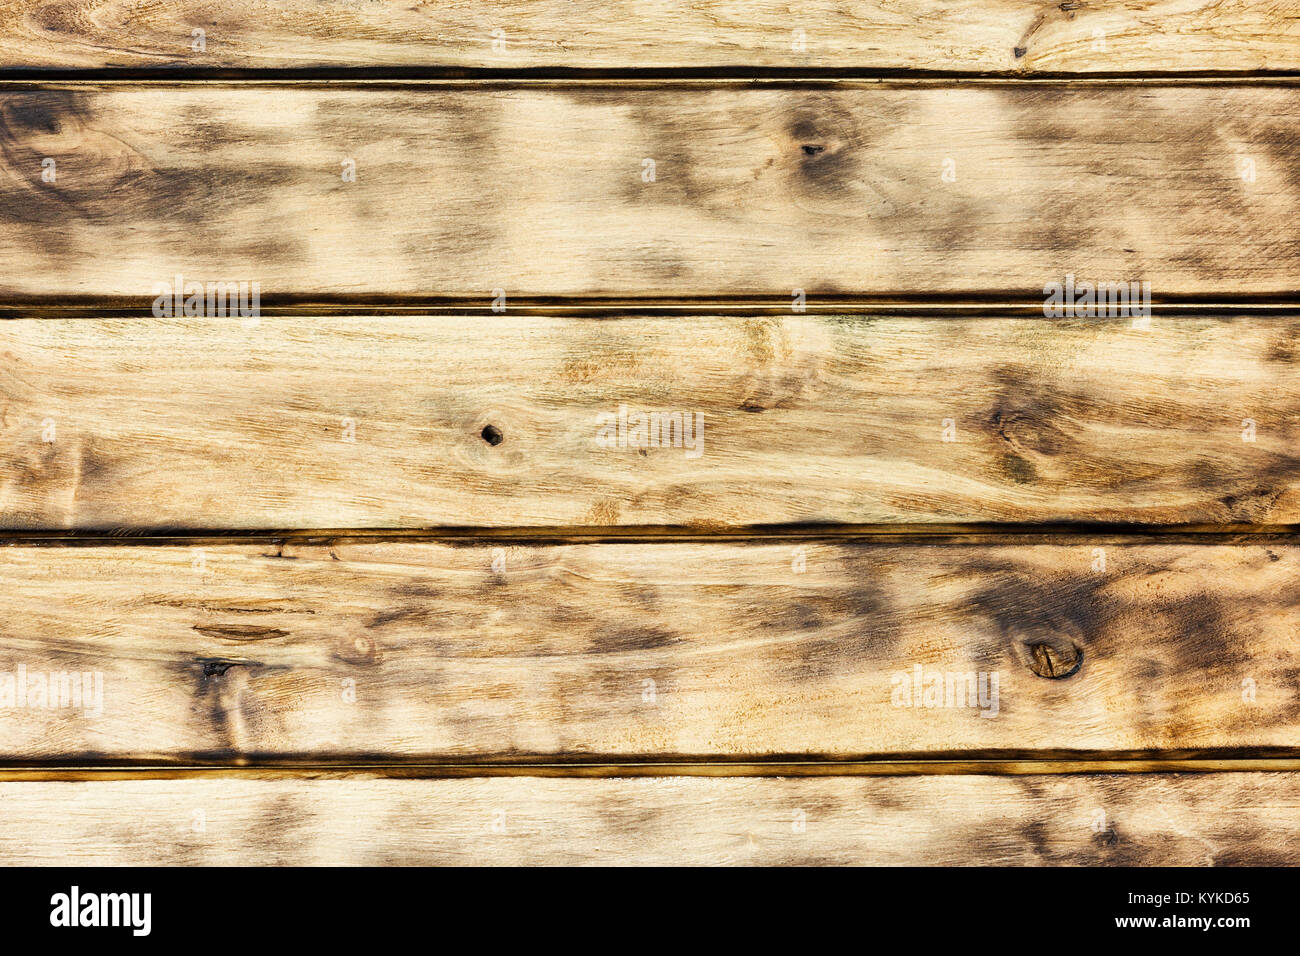 The wooden surface of the horizontal boards with black annealed places Stock Photo